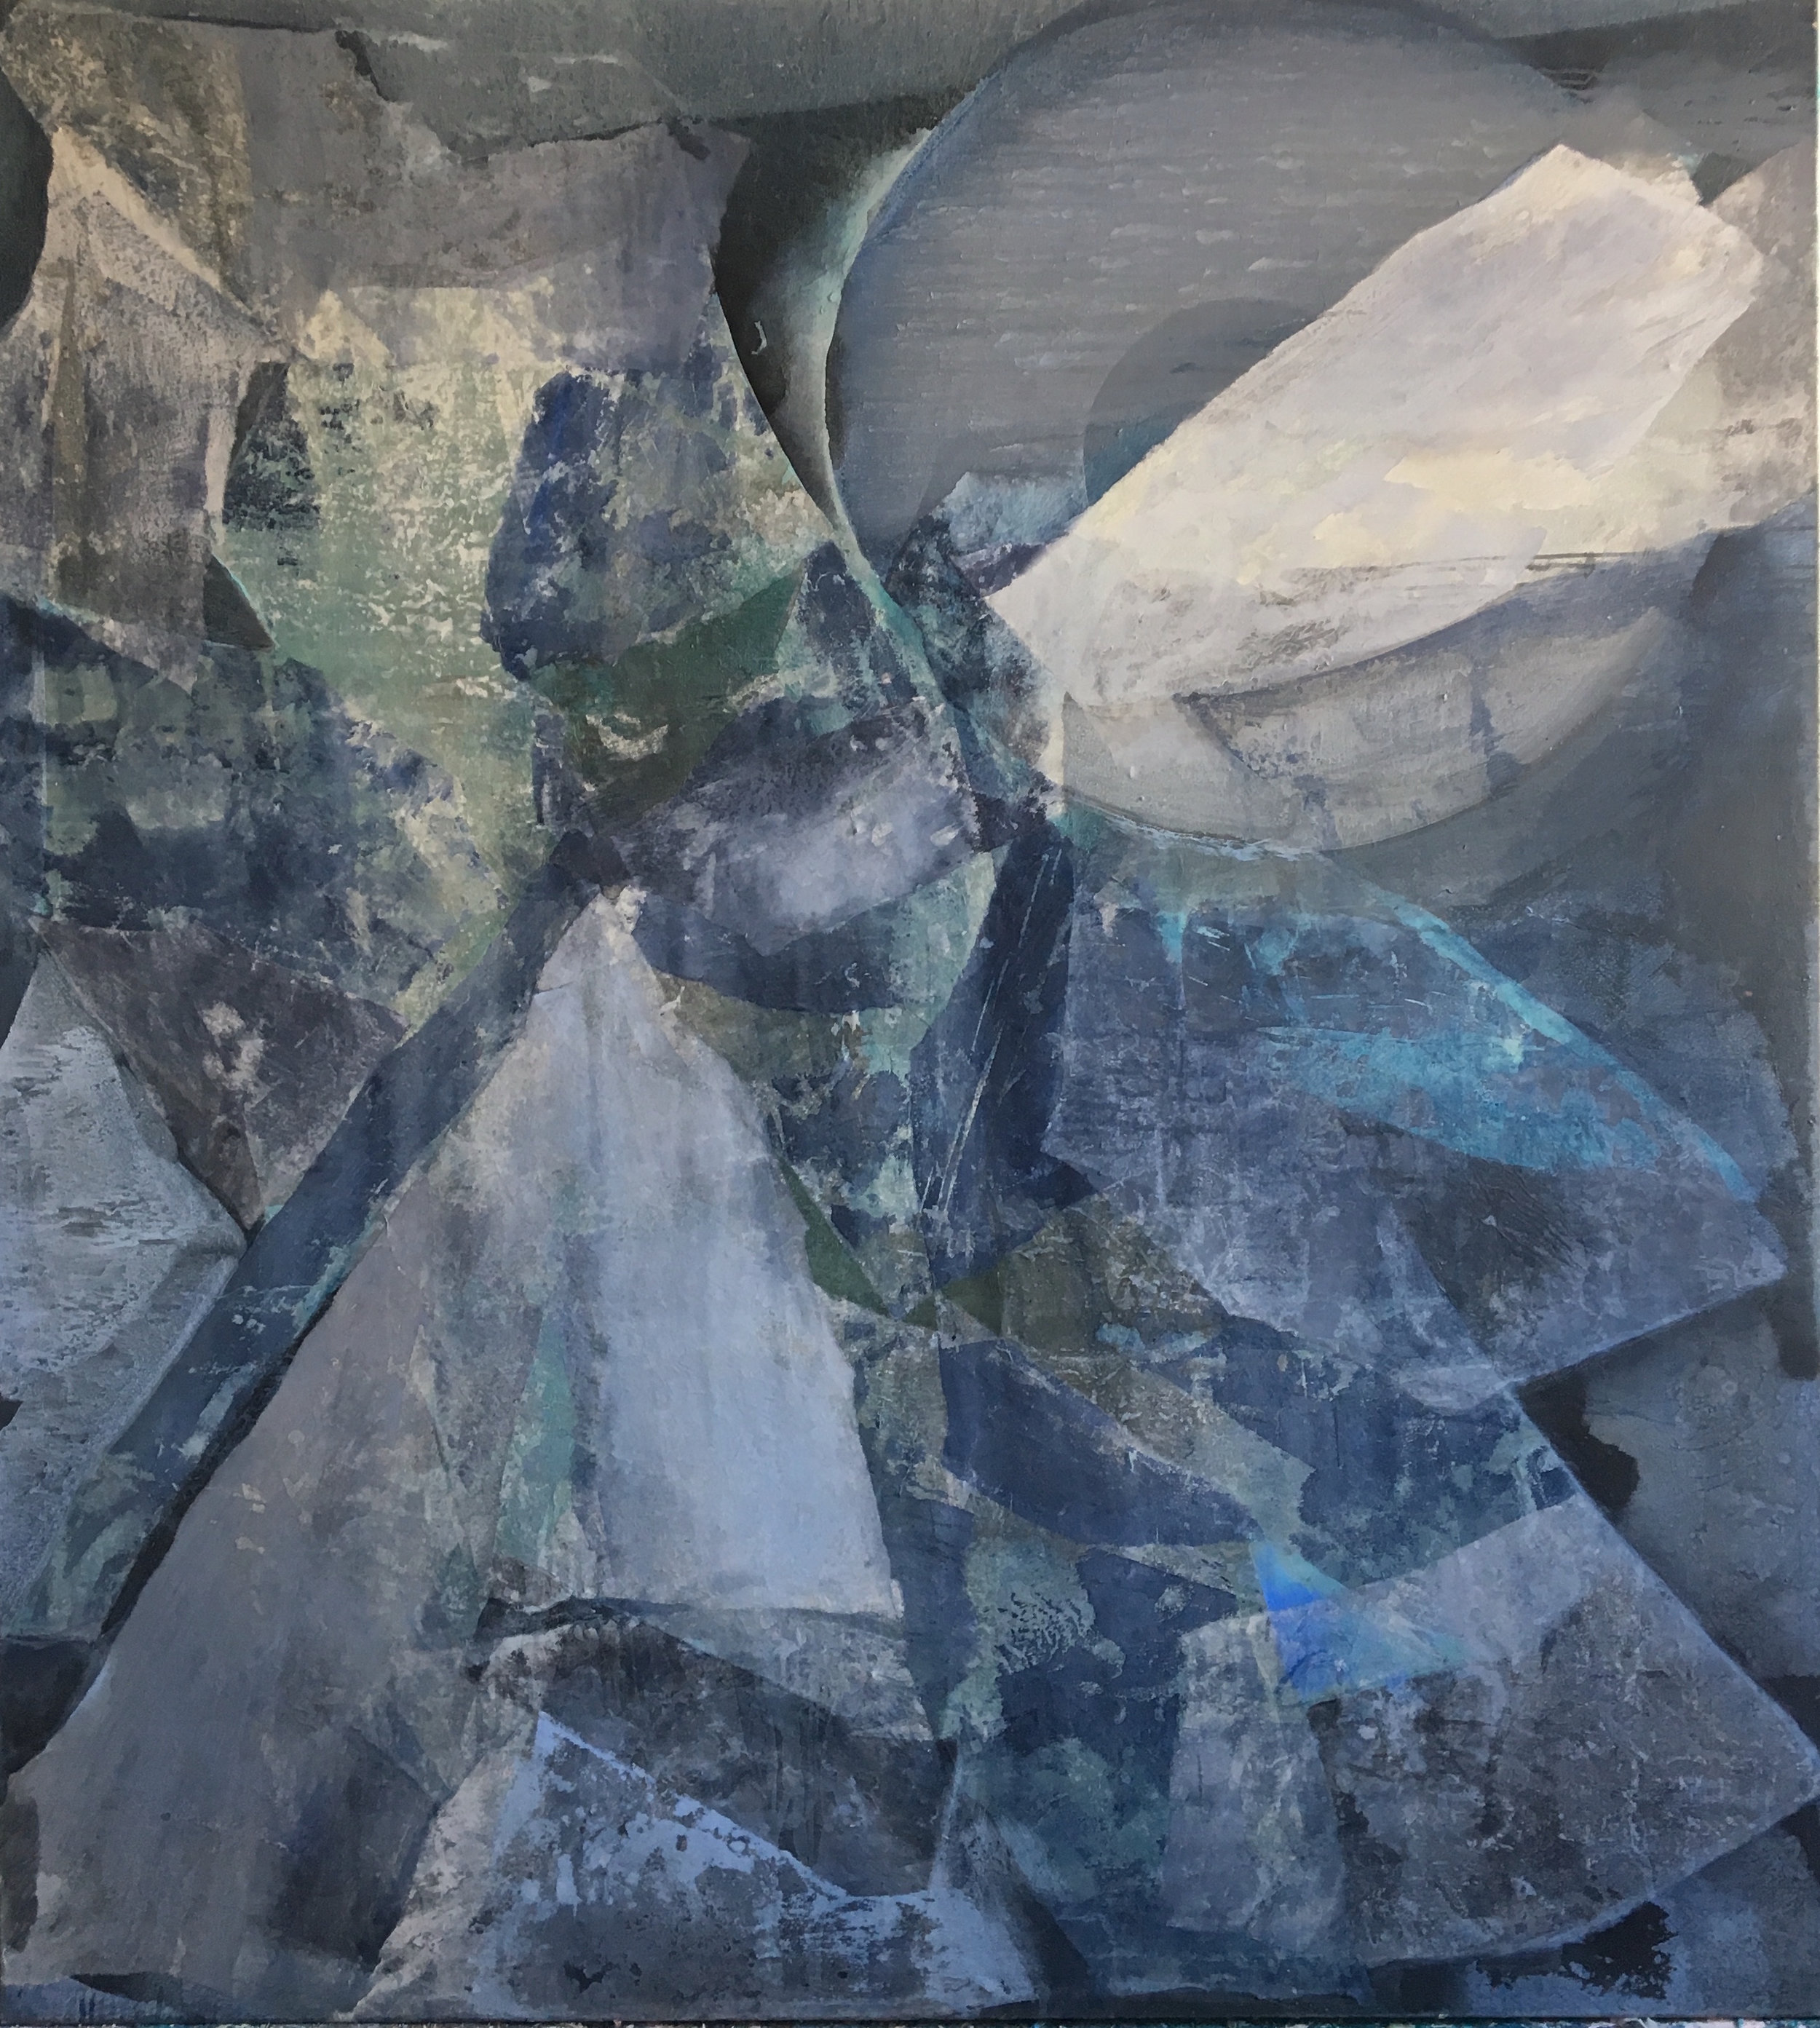 SoHyun Bae, Wrapped Shards: Scholar's Cloak, 2003, rice-paper and pure pigment on canvas, 81 x 70 inches